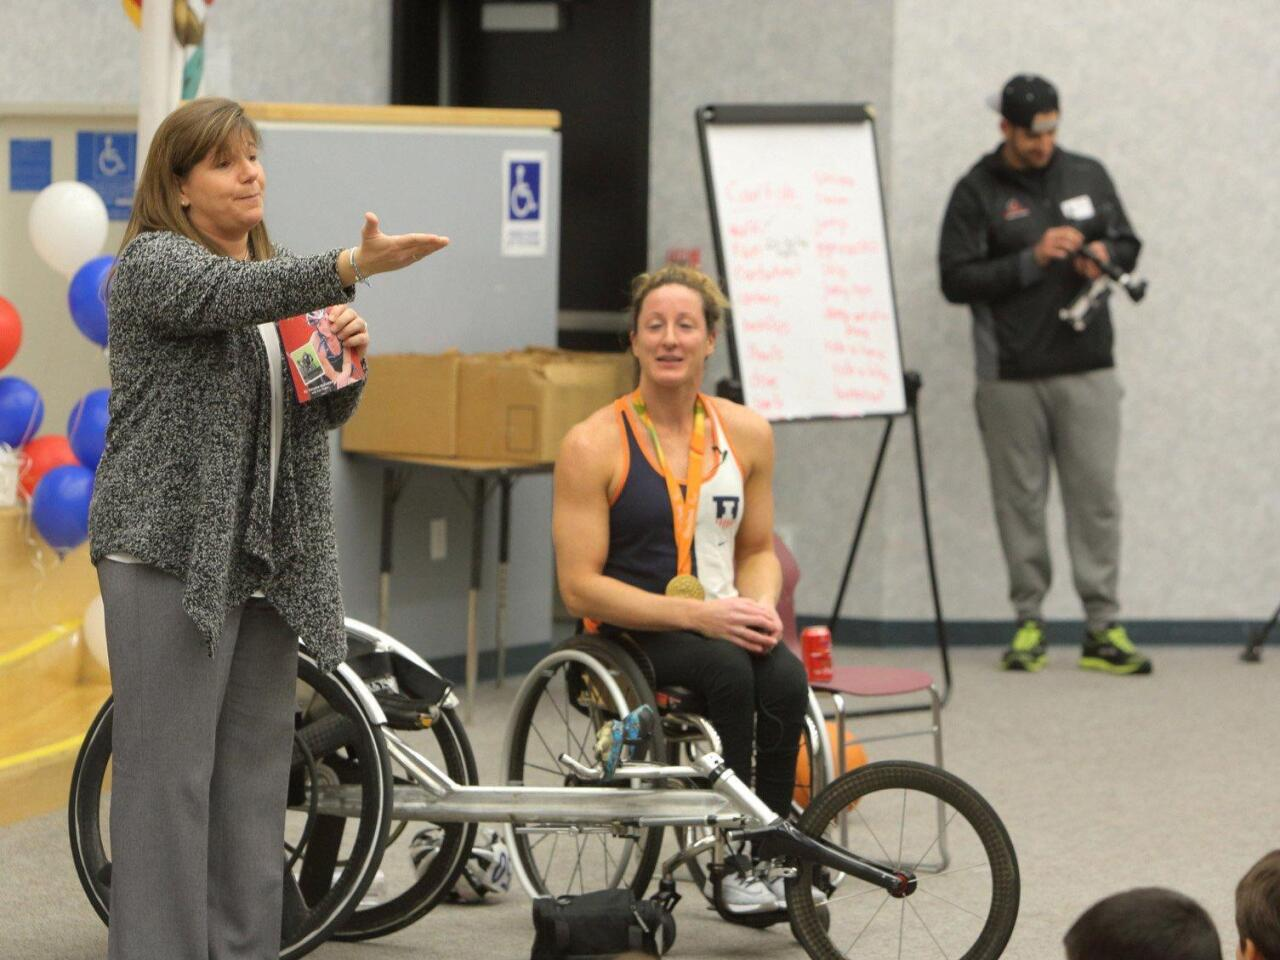 Del Mar Hills Academy Principal Julie Lerner tells her students how she taught Tatyana McFadden to swim when she was a young girl and announces the whole school will be reading Tatyana's book.